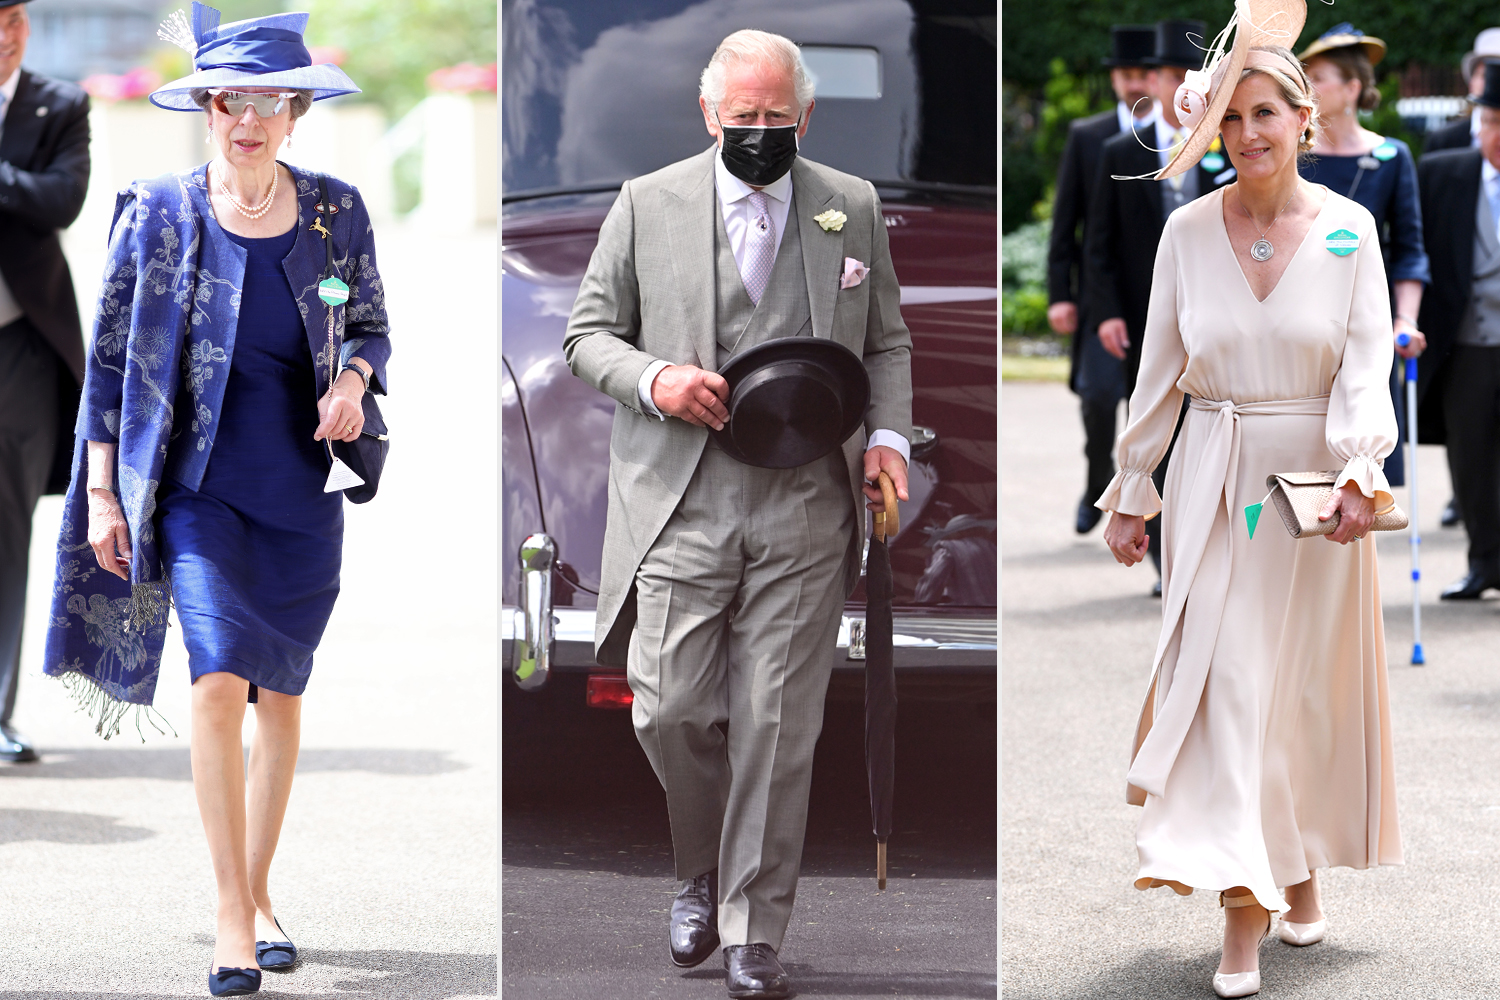 Princess Anne, Princess Royal; Prince Charles, Prince of Wales; Sophie, Countess of Wessex